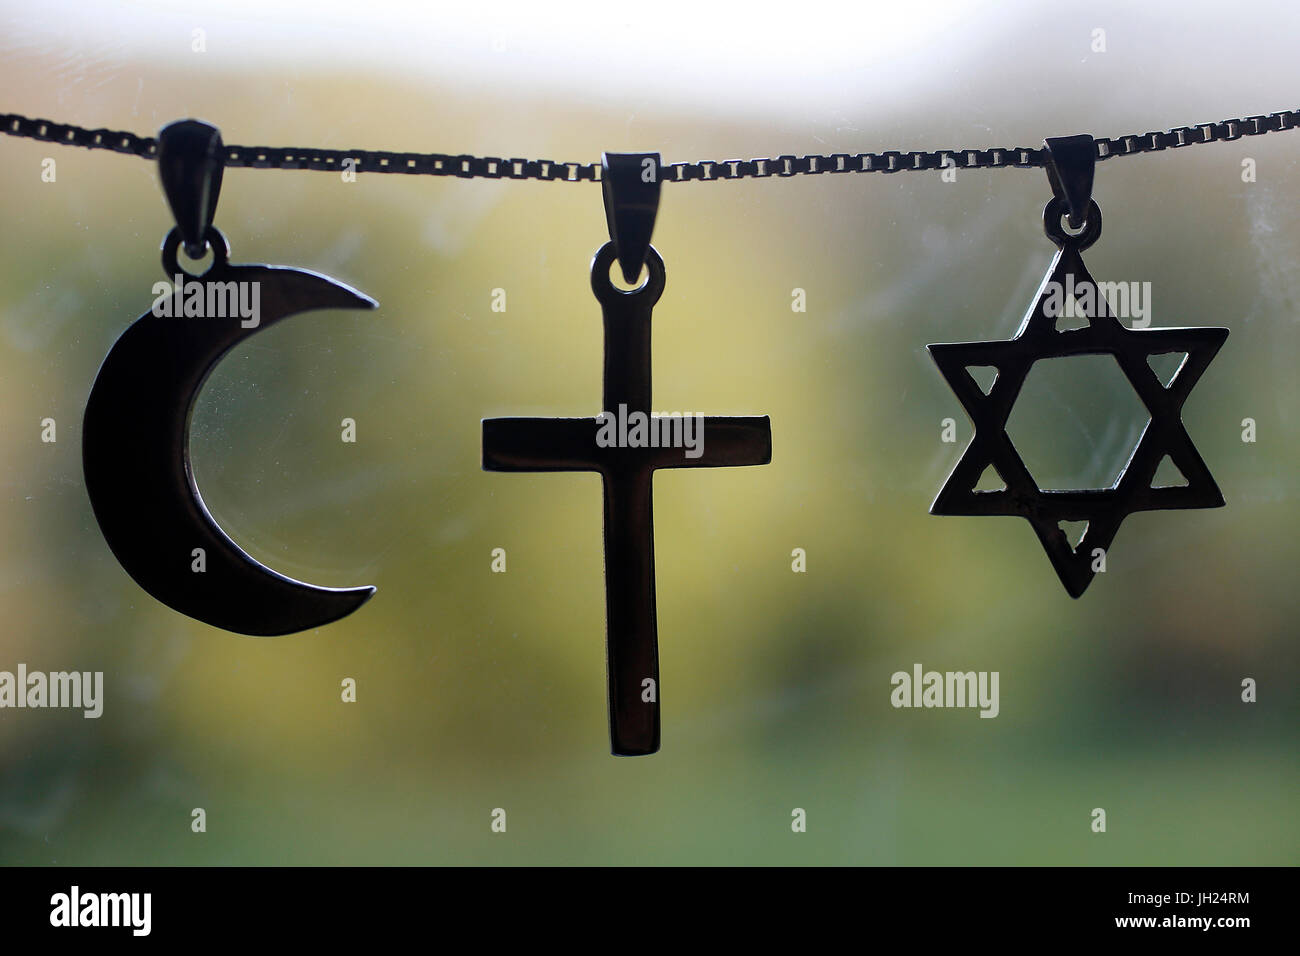 Symbols of islam, christianity and judaism. Stock Photo